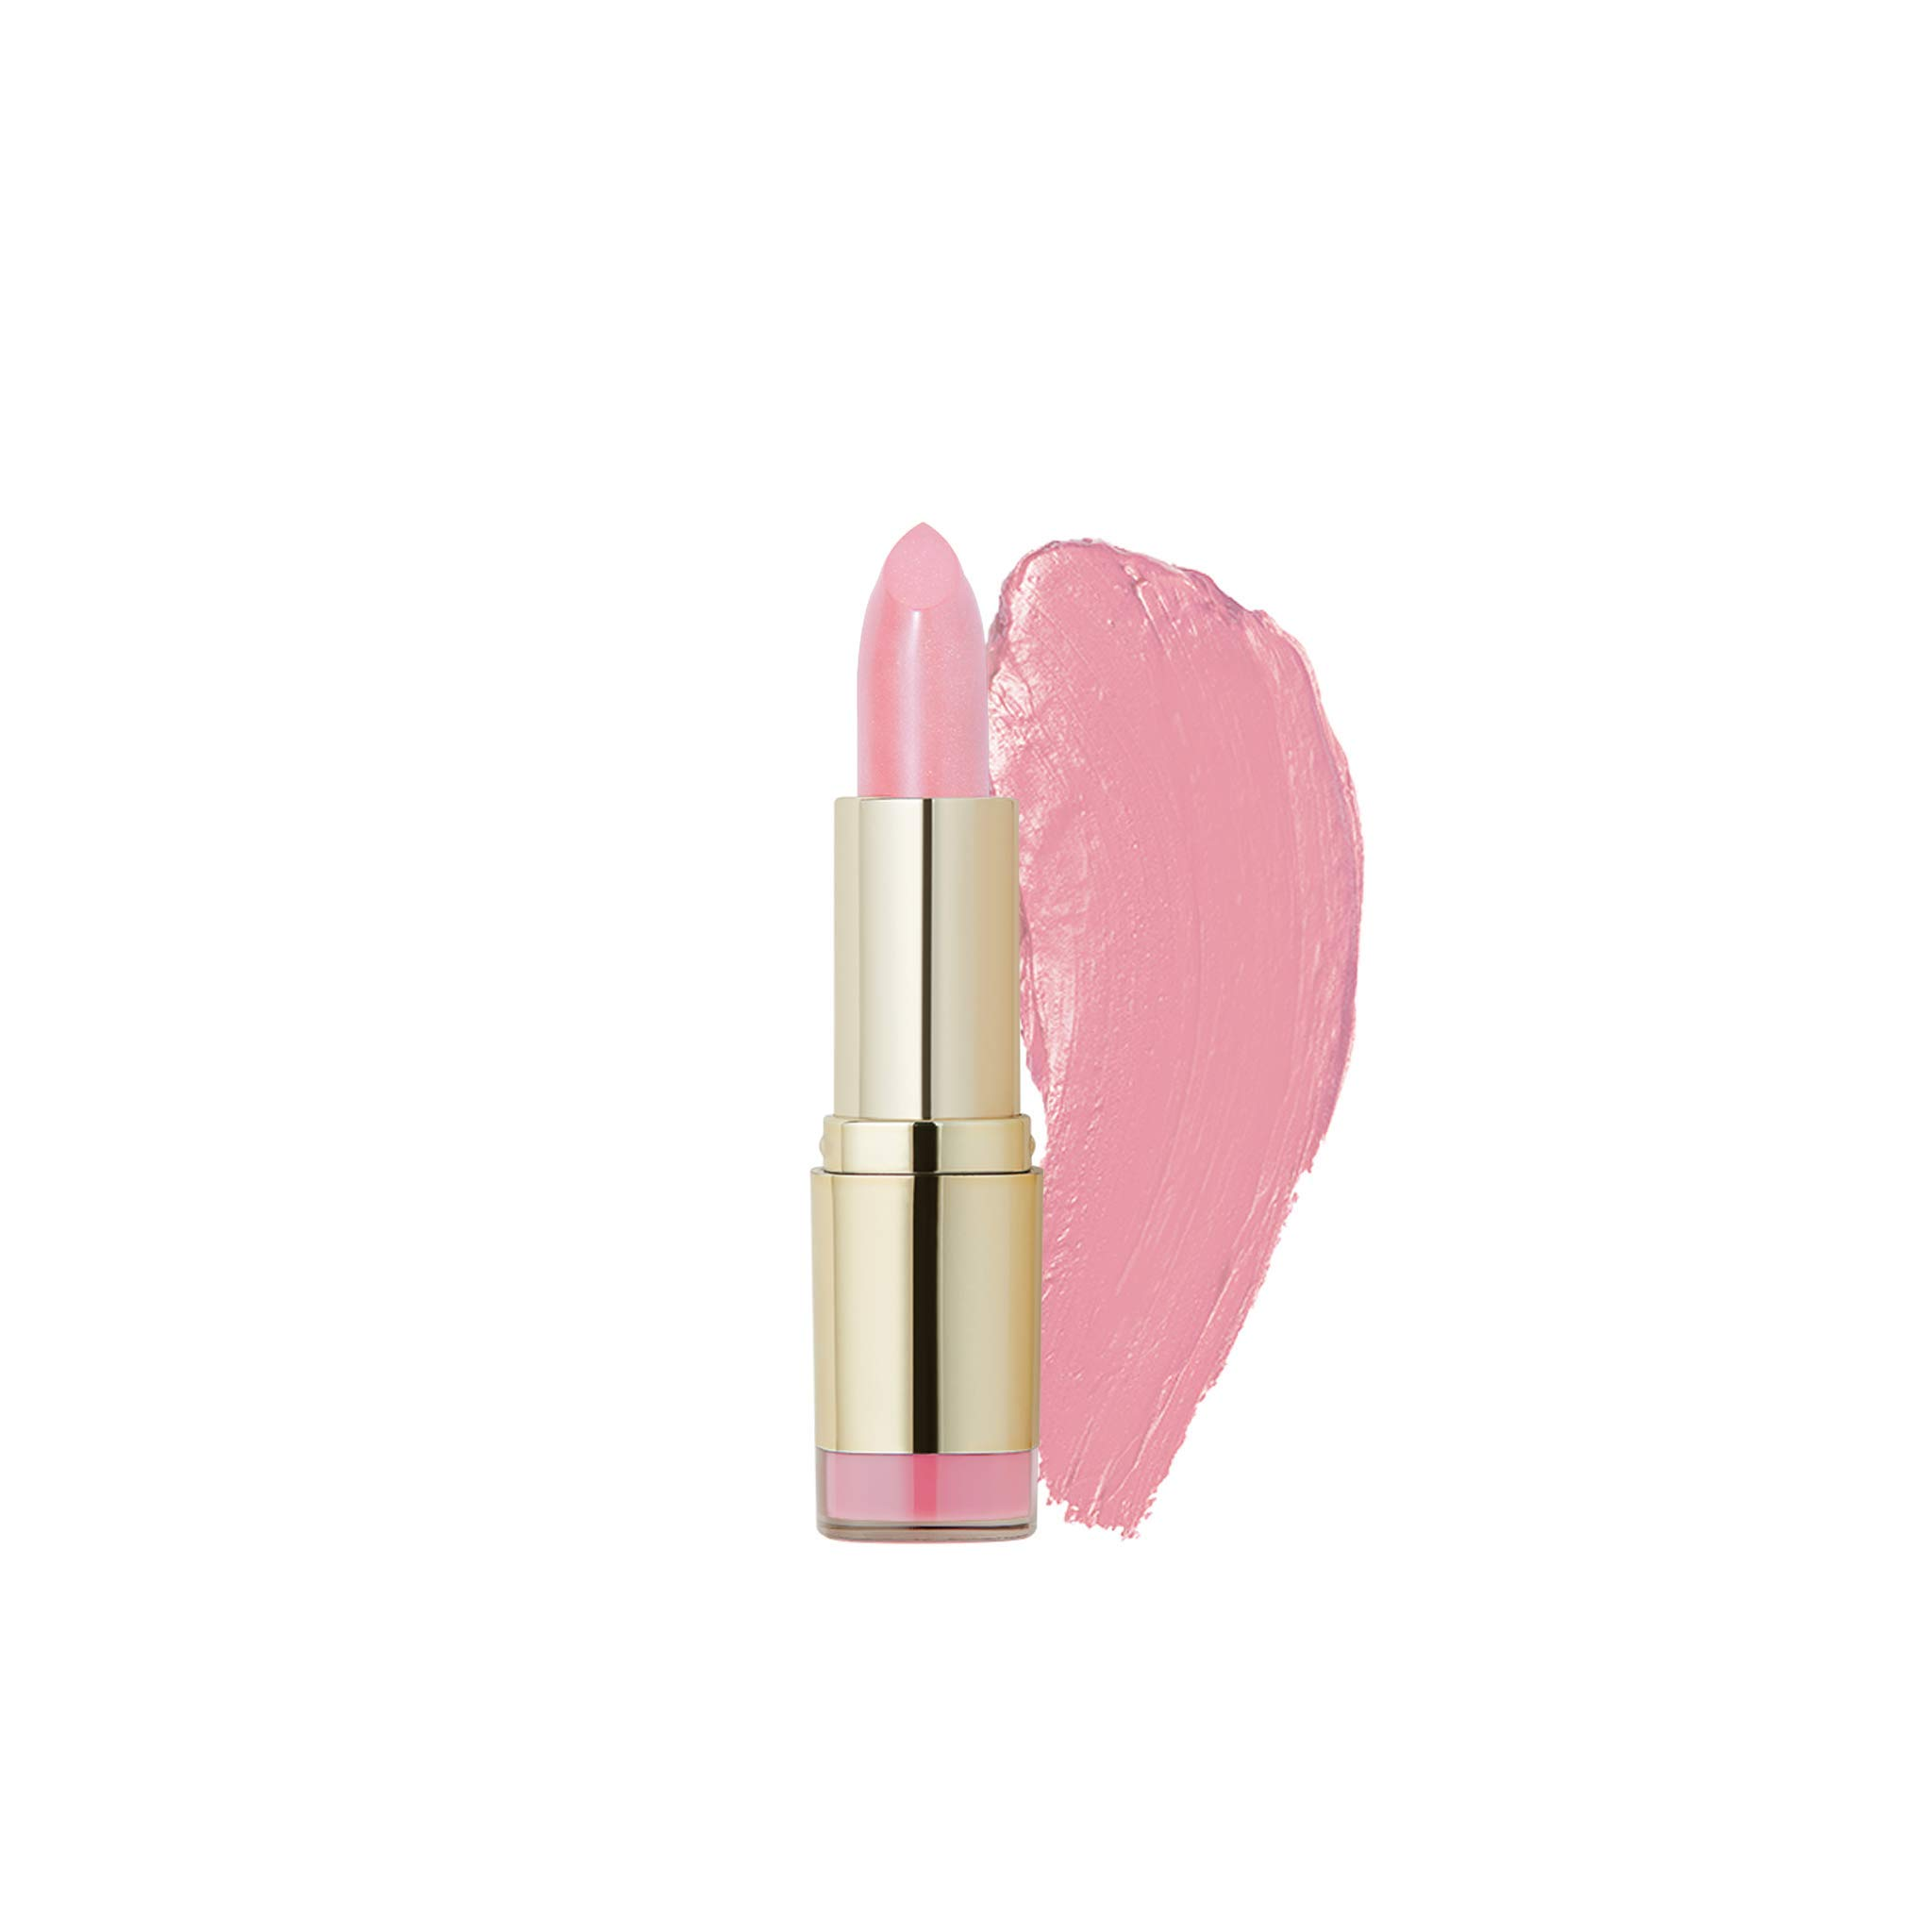 Milani Color Statement Lipstick -Pink Frost, Cruelty-Free Nourishing Lip Stick in Vibrant Shades, Pink Lipstick, 0.14 Ounce